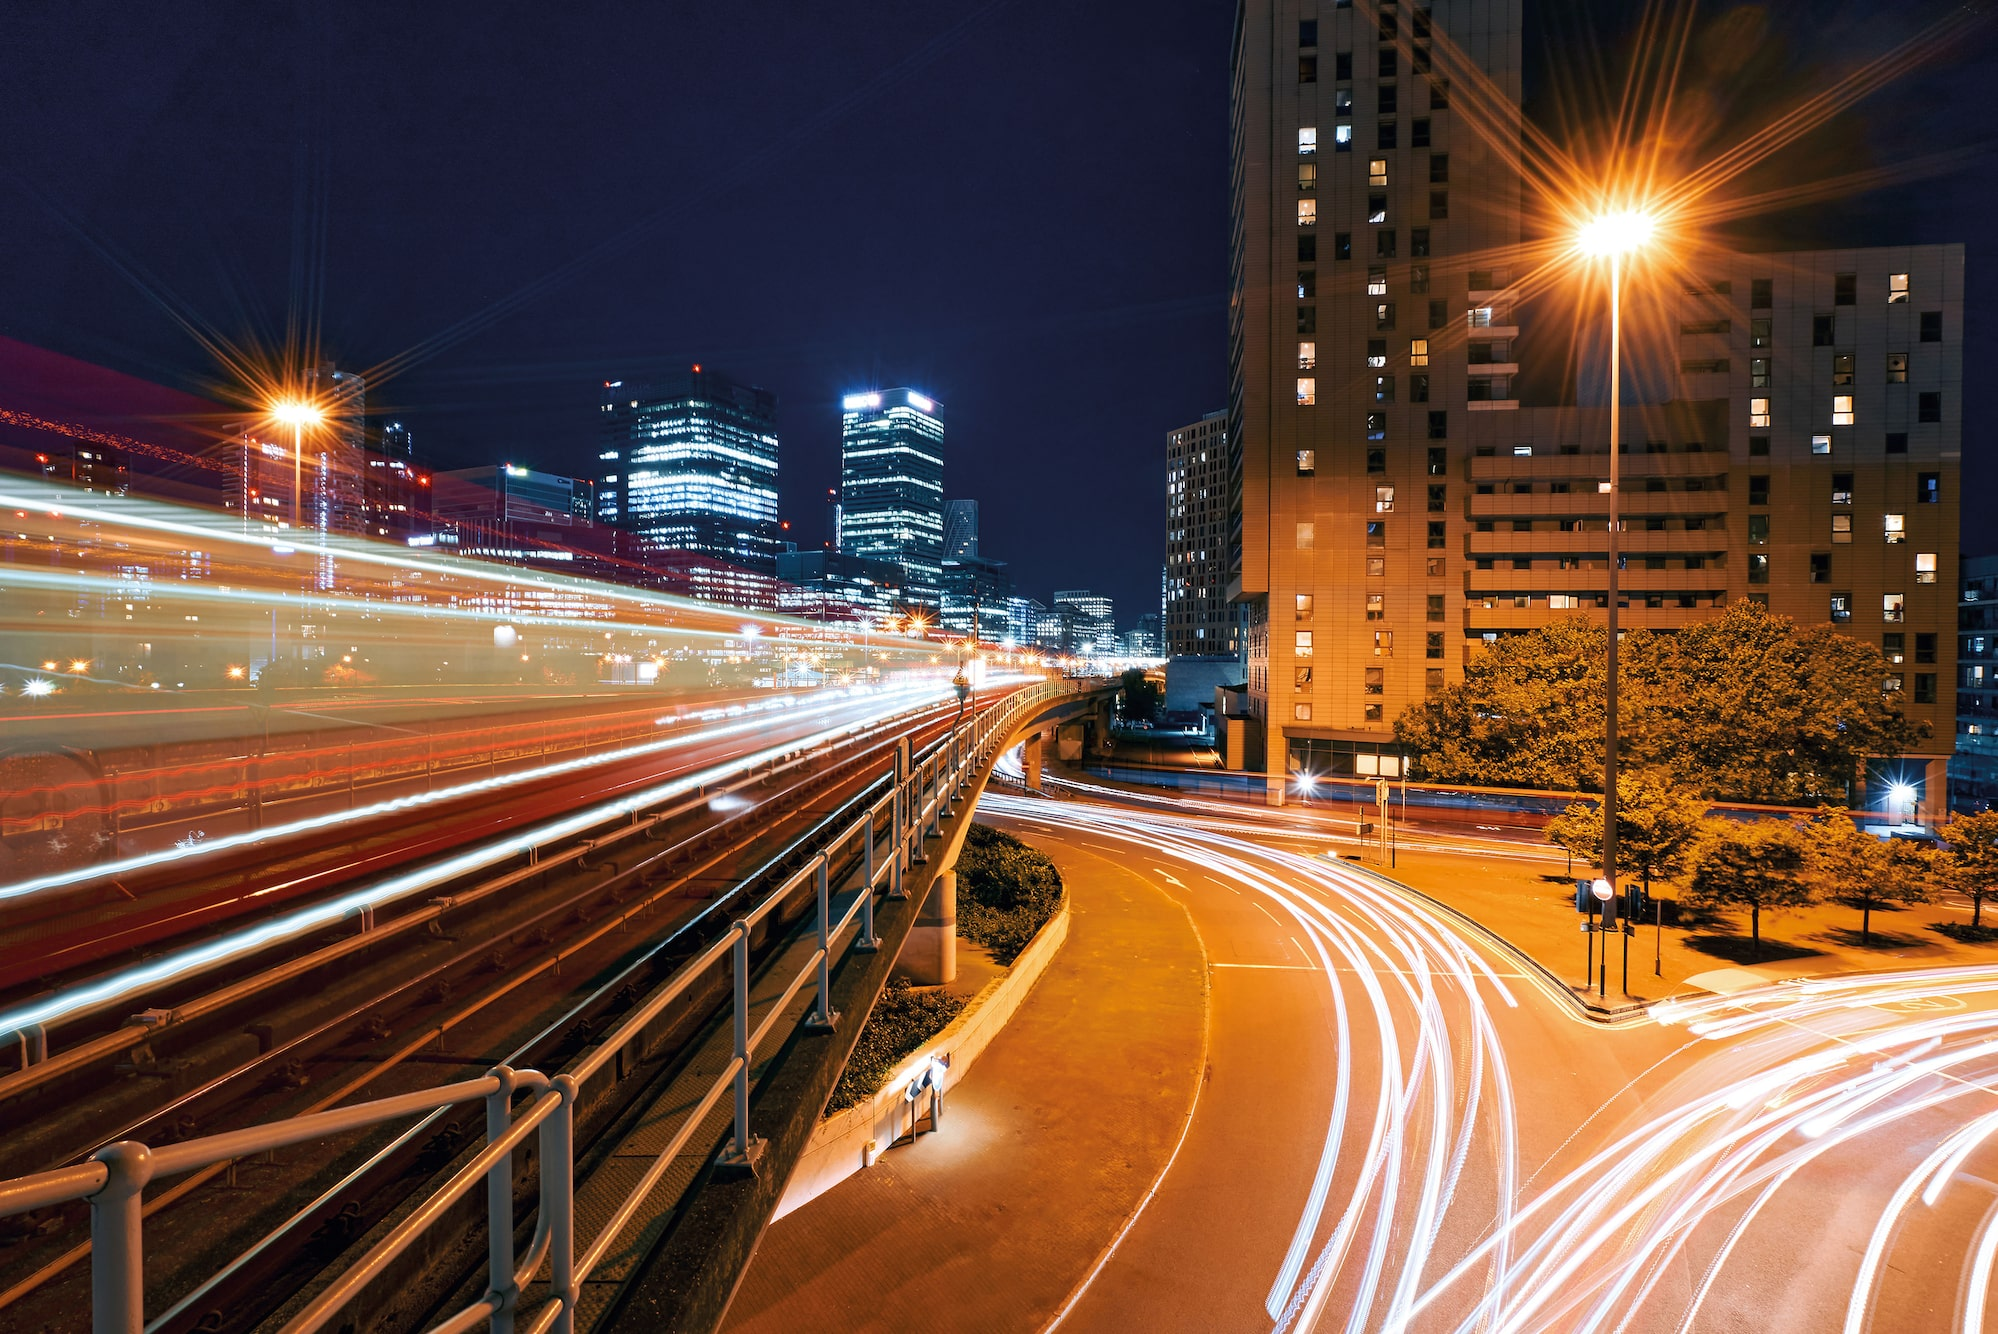 ron-timehin-sony-alpha-7c-light-trails-from-cars-at-night.